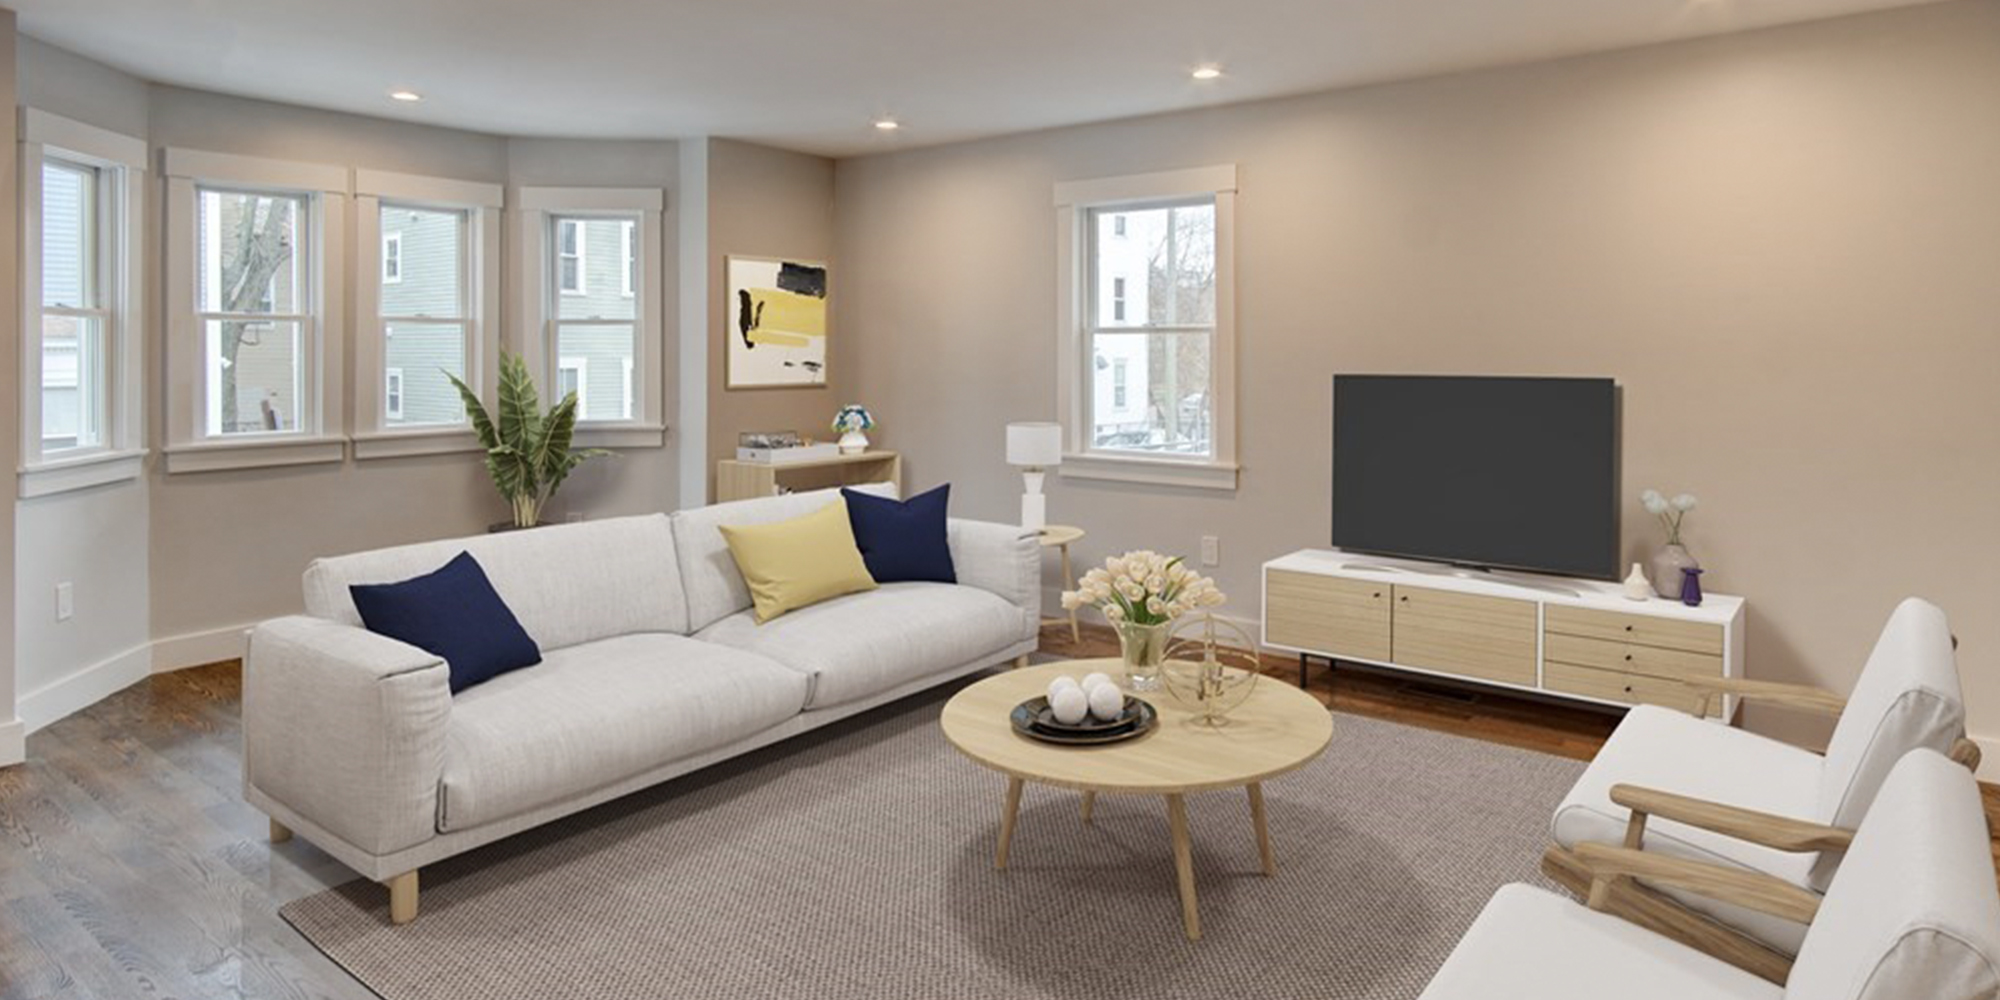 Weekend Open House! Check Out These Two Newly-Renovated Duplex Condos Now Available in Jamaica Plain